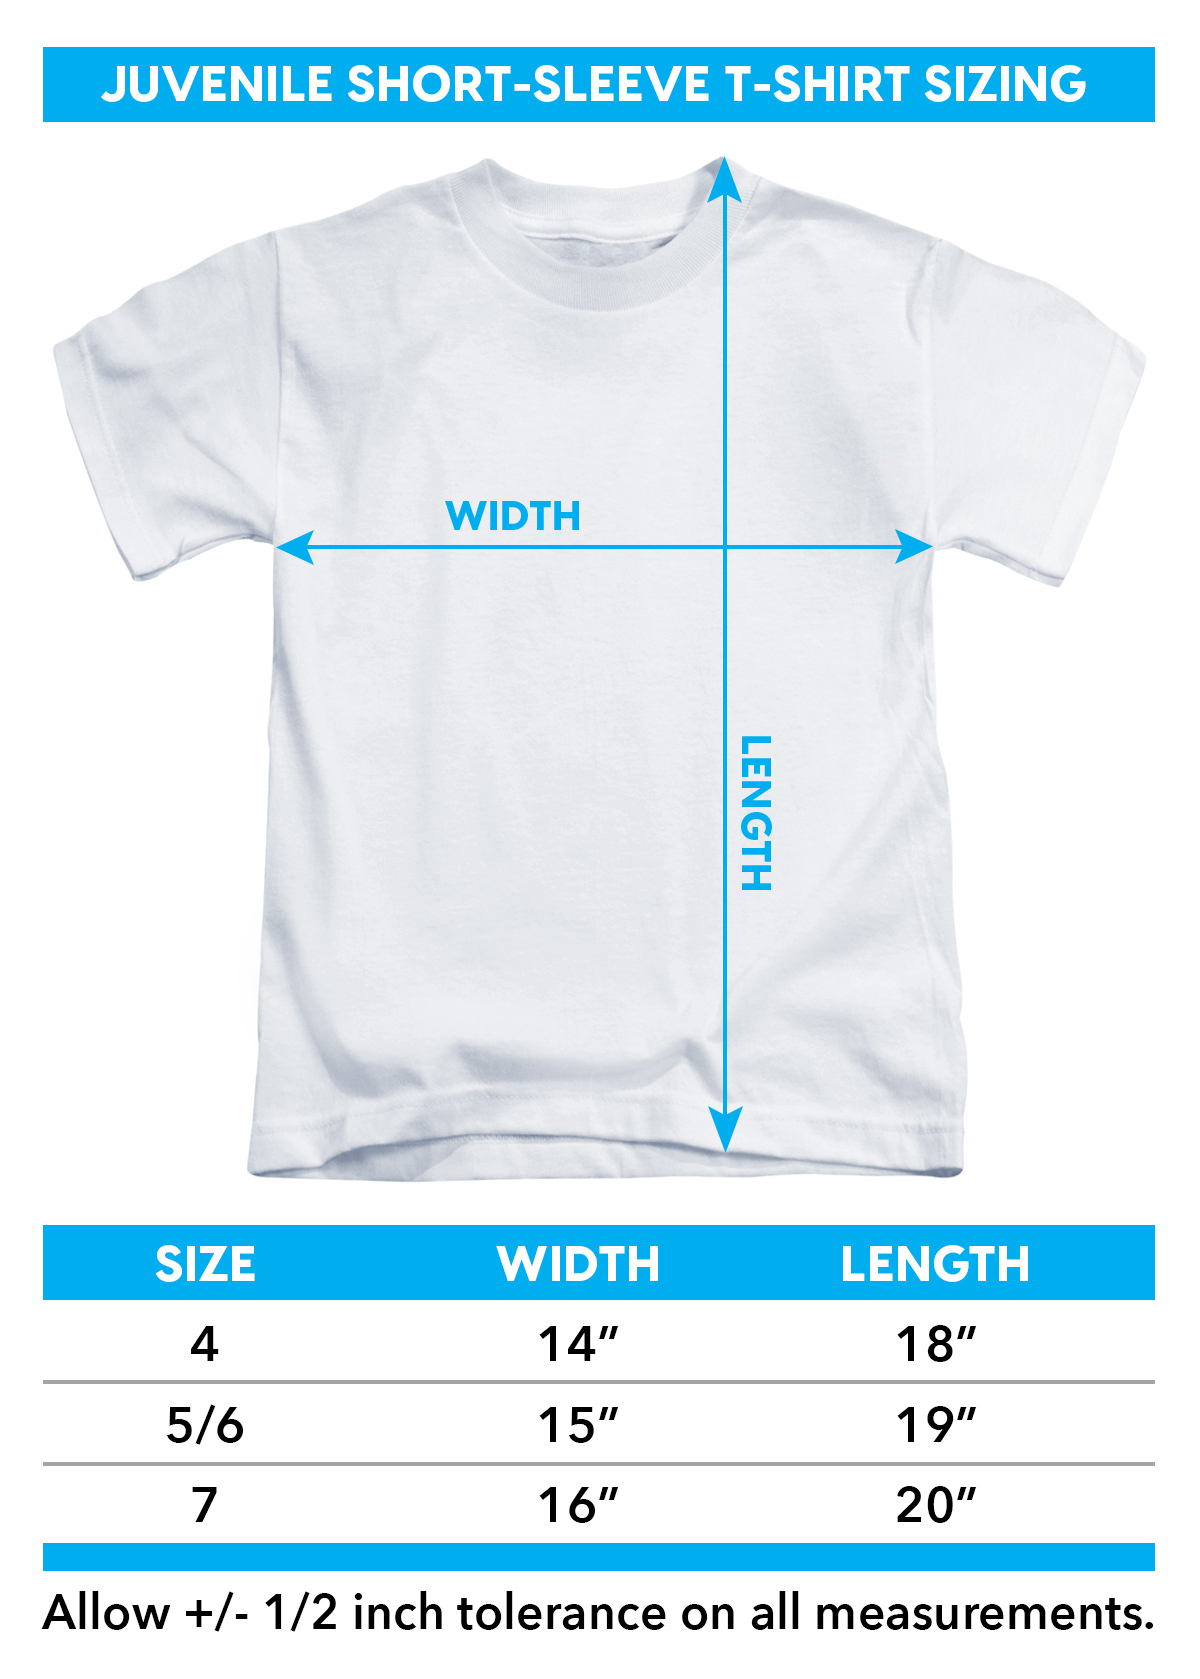 Sizing chart in inches for Lobo Kids T-Shirt - Lobo's Back TRV-JLA852-KT